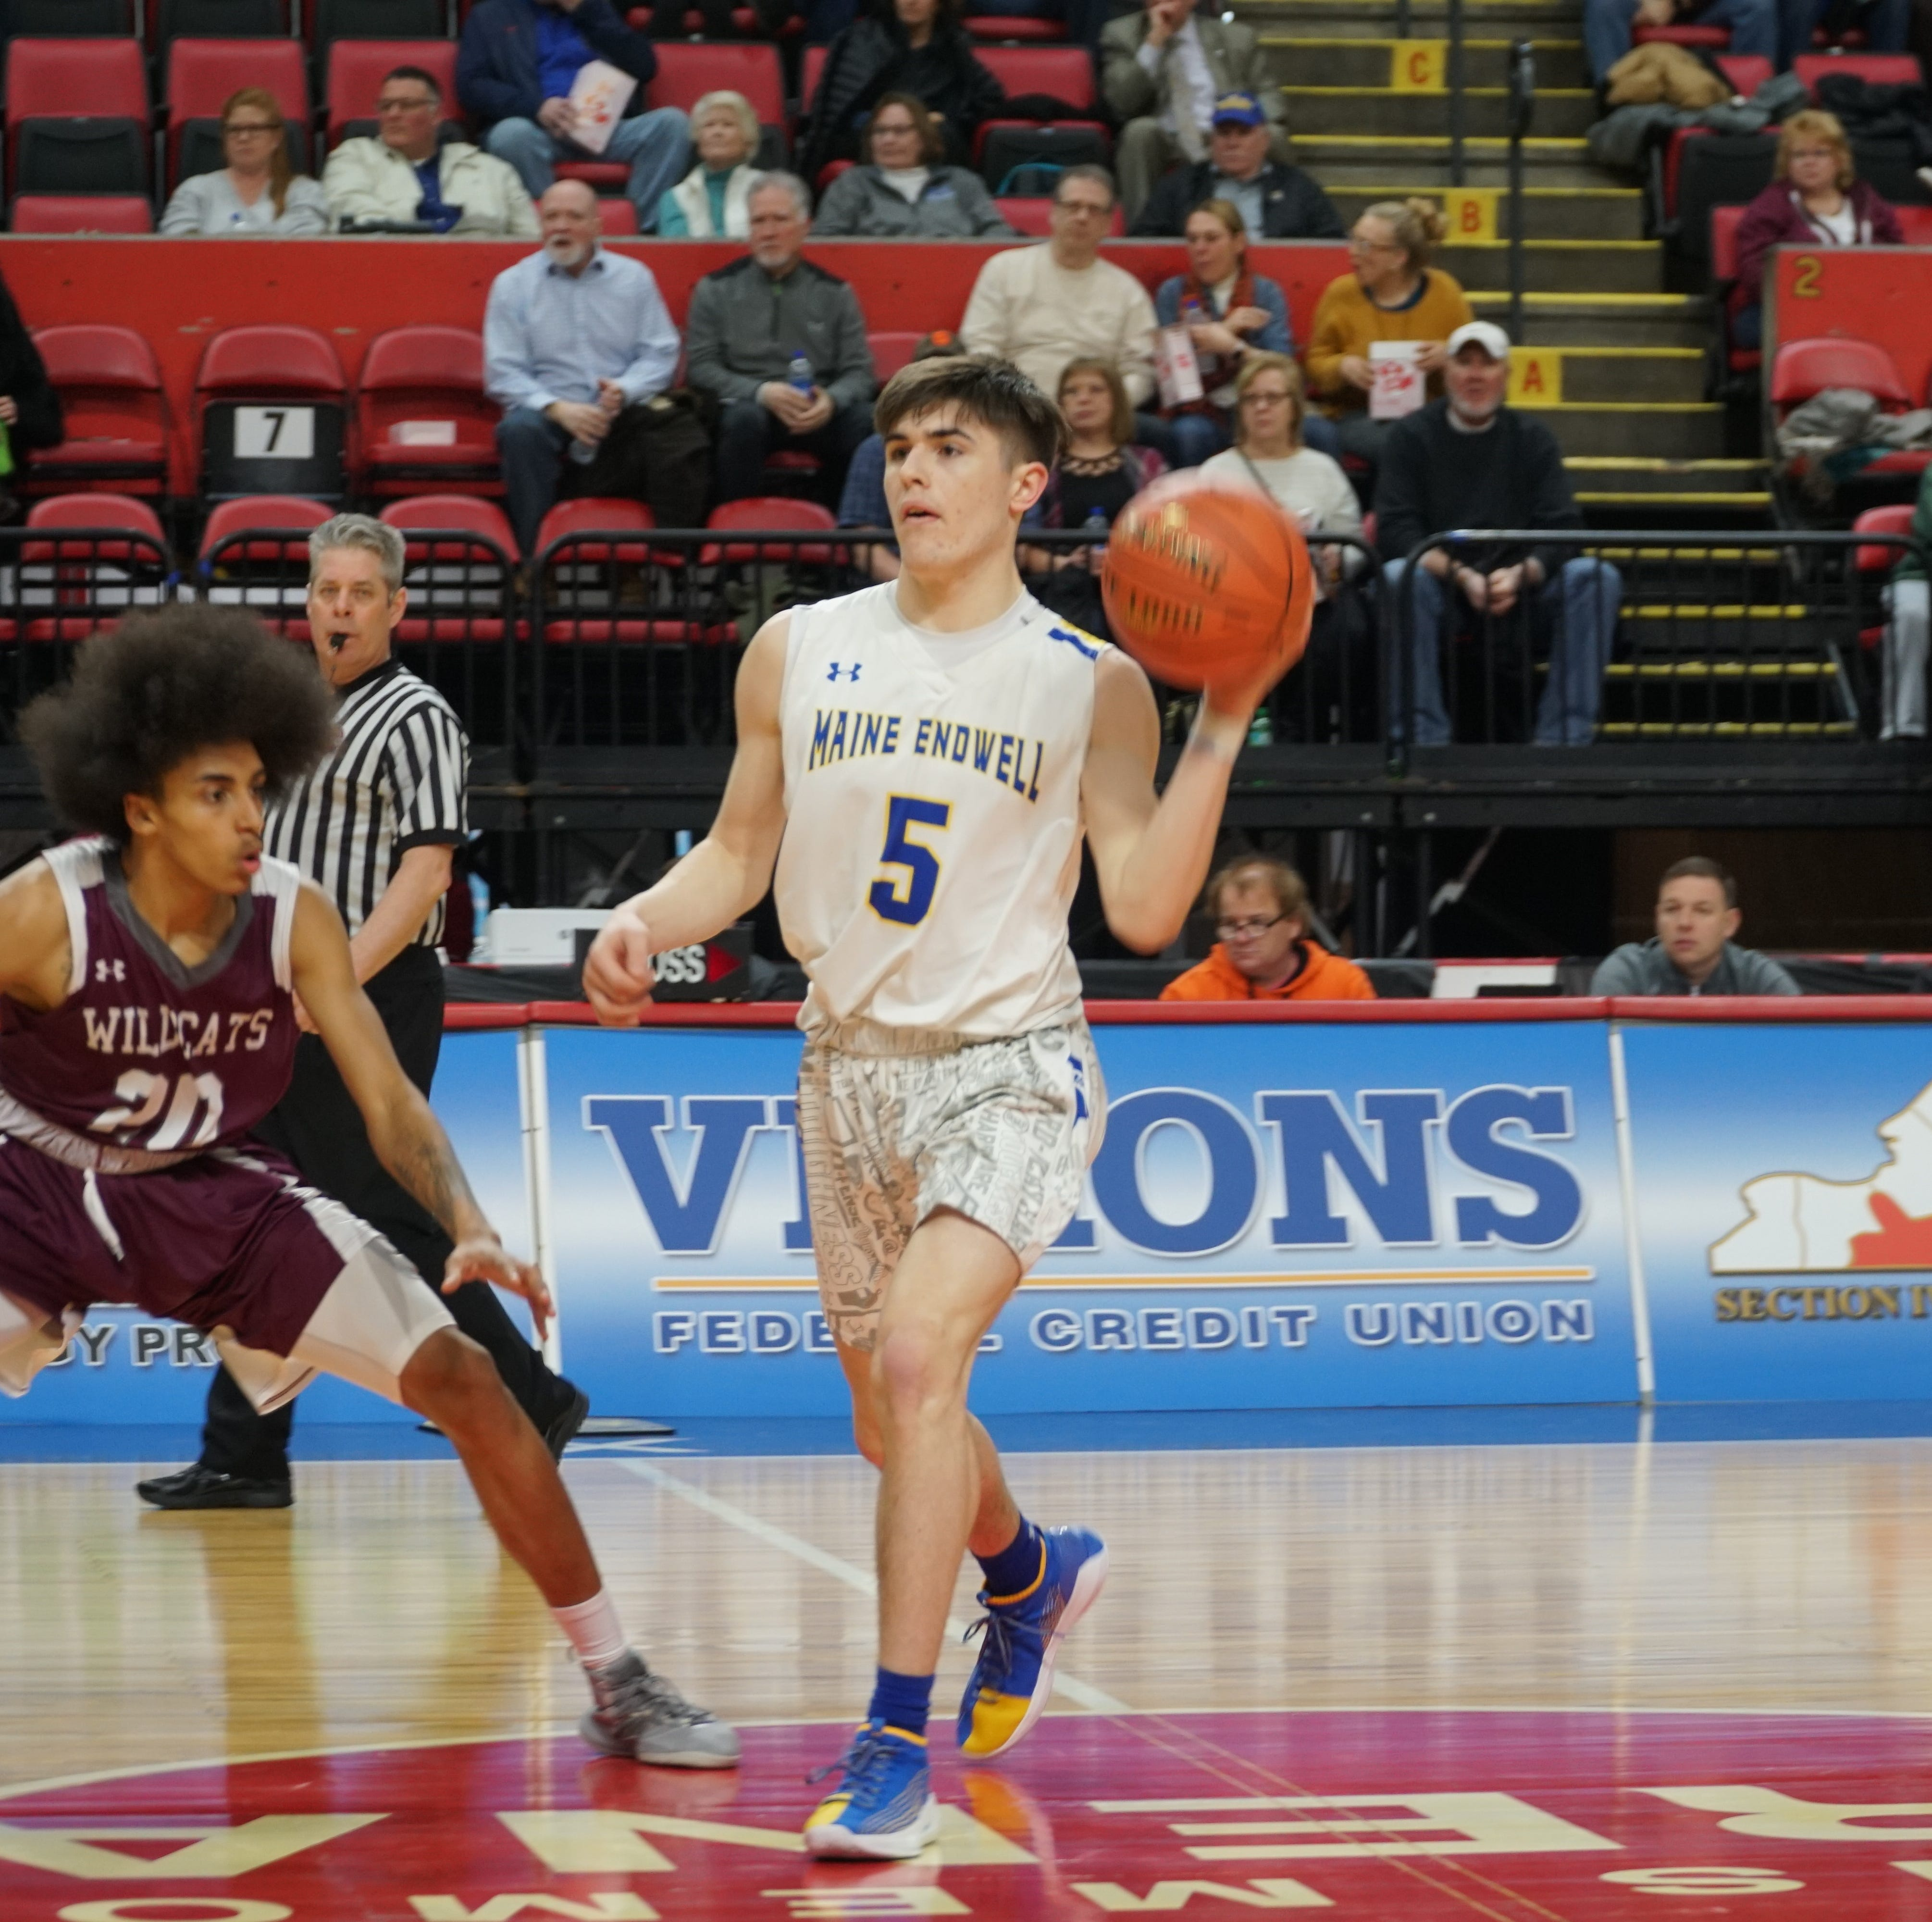 Boys Basketball: Harris' 27 points lead JC to sectional title